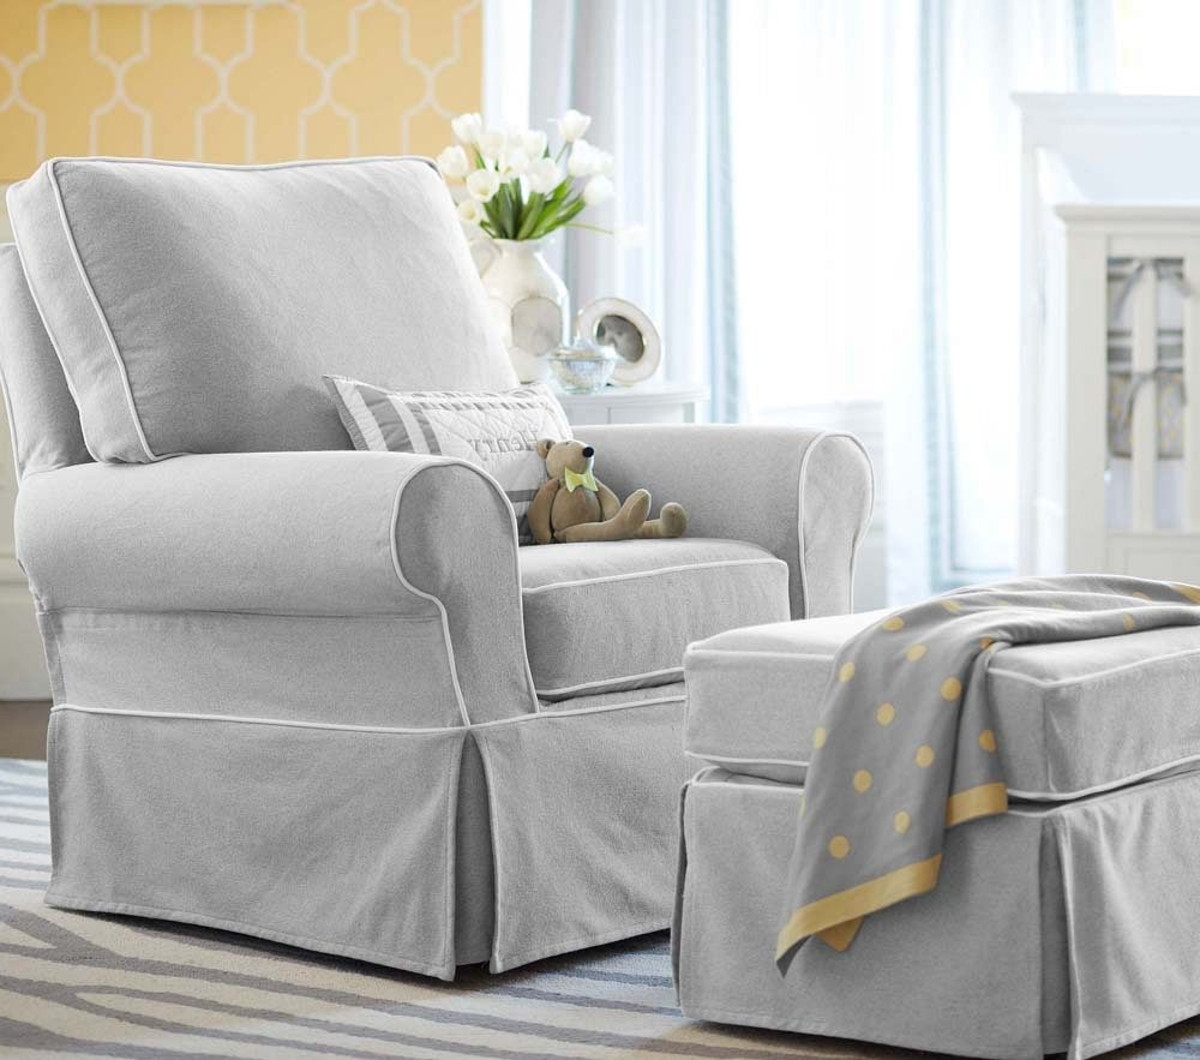 Most Up To Date Gliders With Ottoman Inside The Most Comfortable Nursing Chair & Ottoman (View 13 of 20)